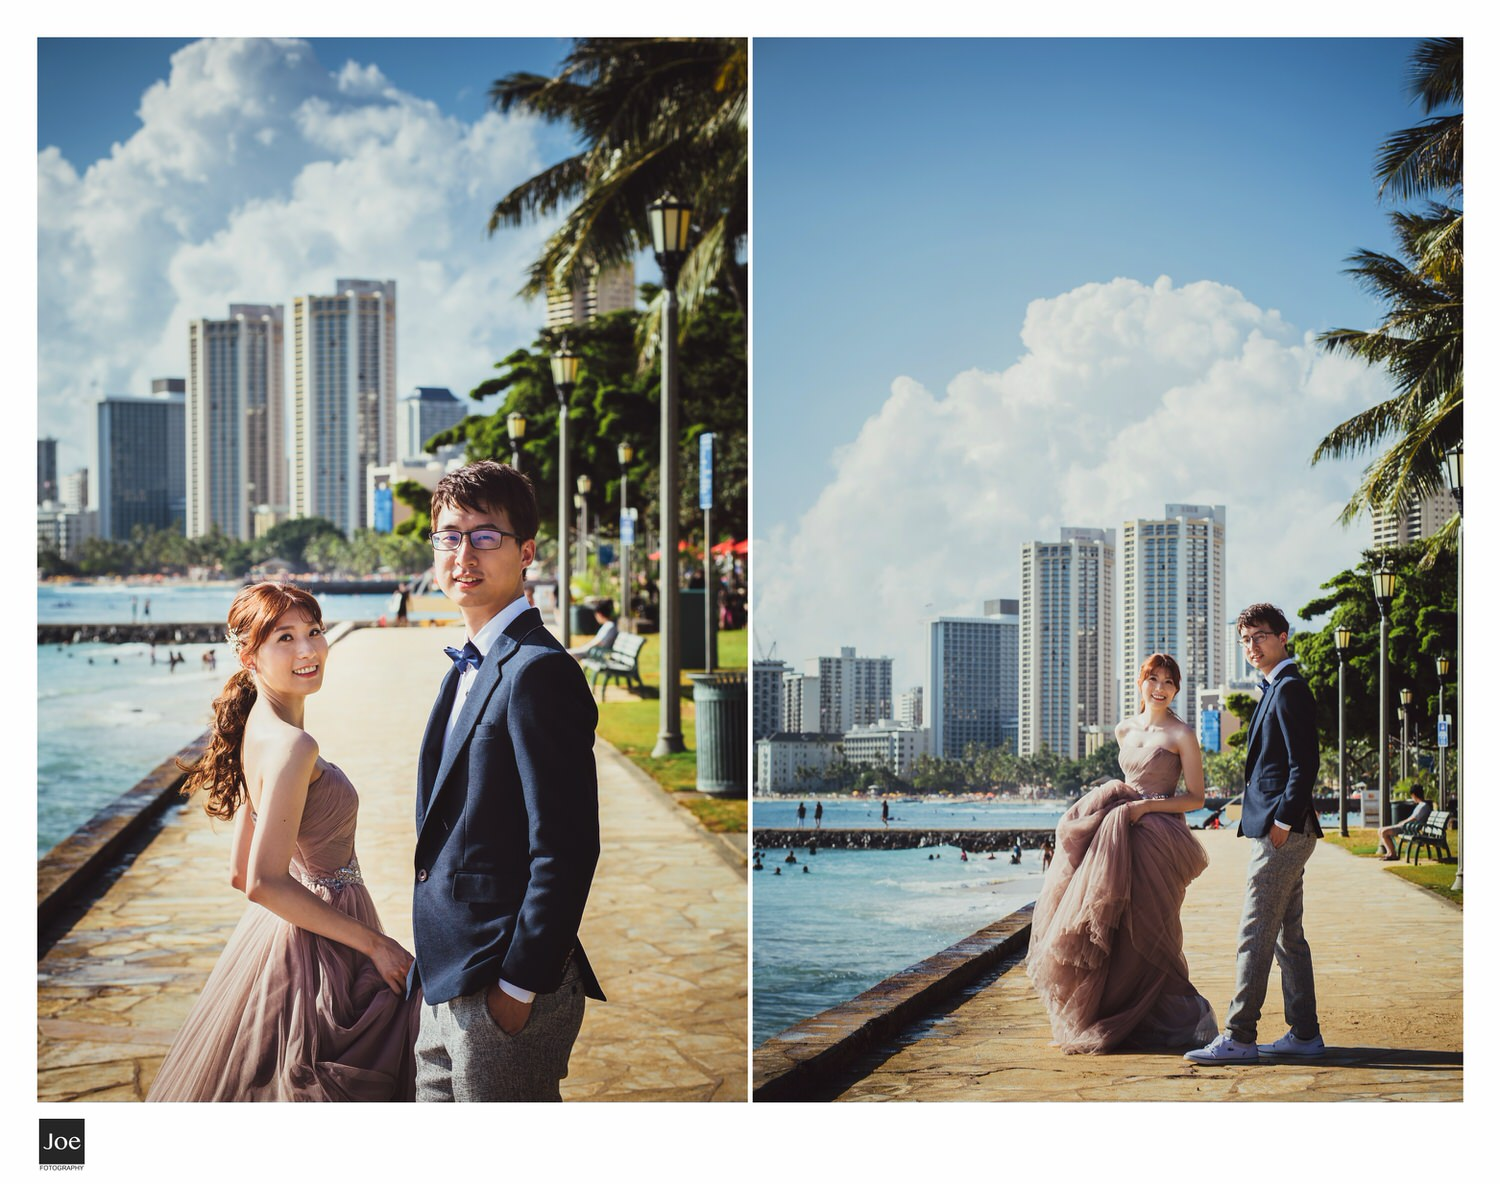 040-waikiki-beach-hawaii-pre-wedding-tiffany-tony-joe-fotography.jpg